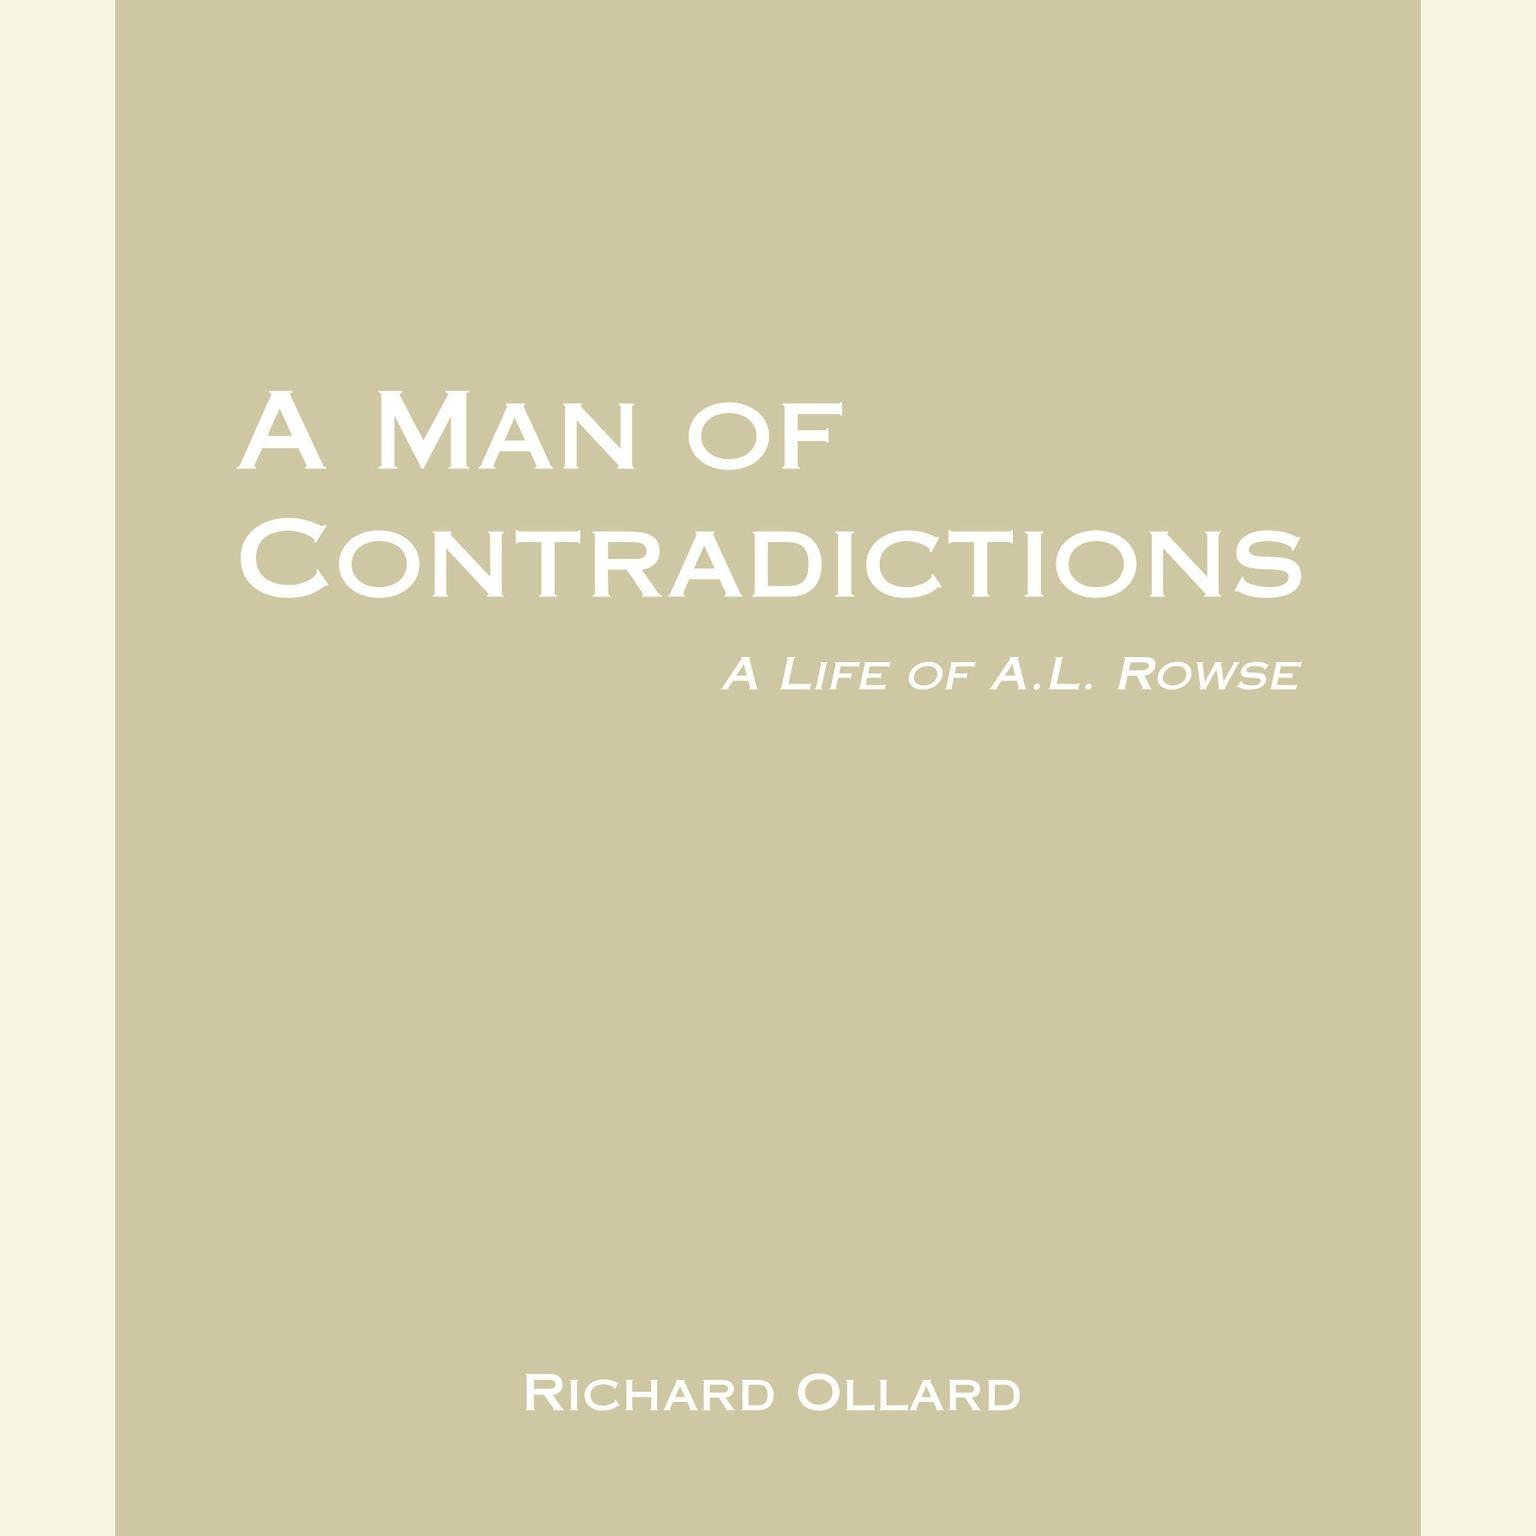 Printable A Man of Contradictions: A Life of A.L. Rowse Audiobook Cover Art